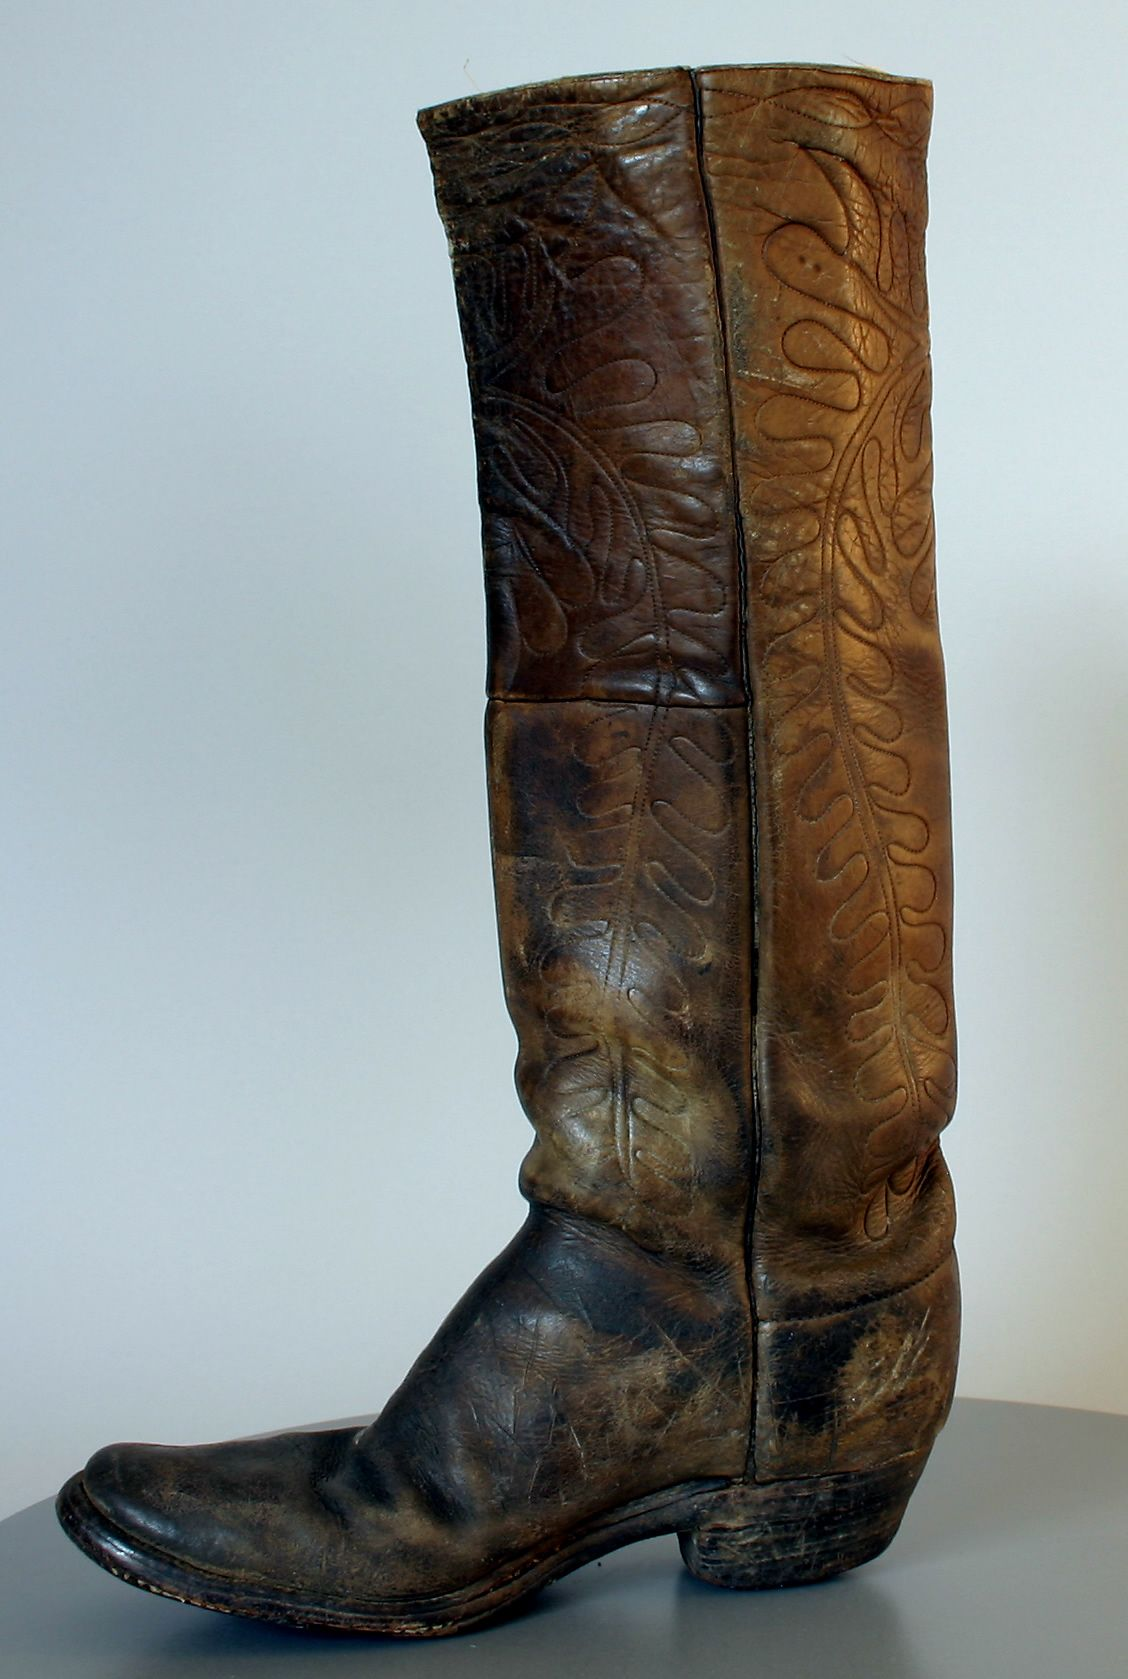 Early Cowboy Boot (1890s) By the early 1880s, the cowboy